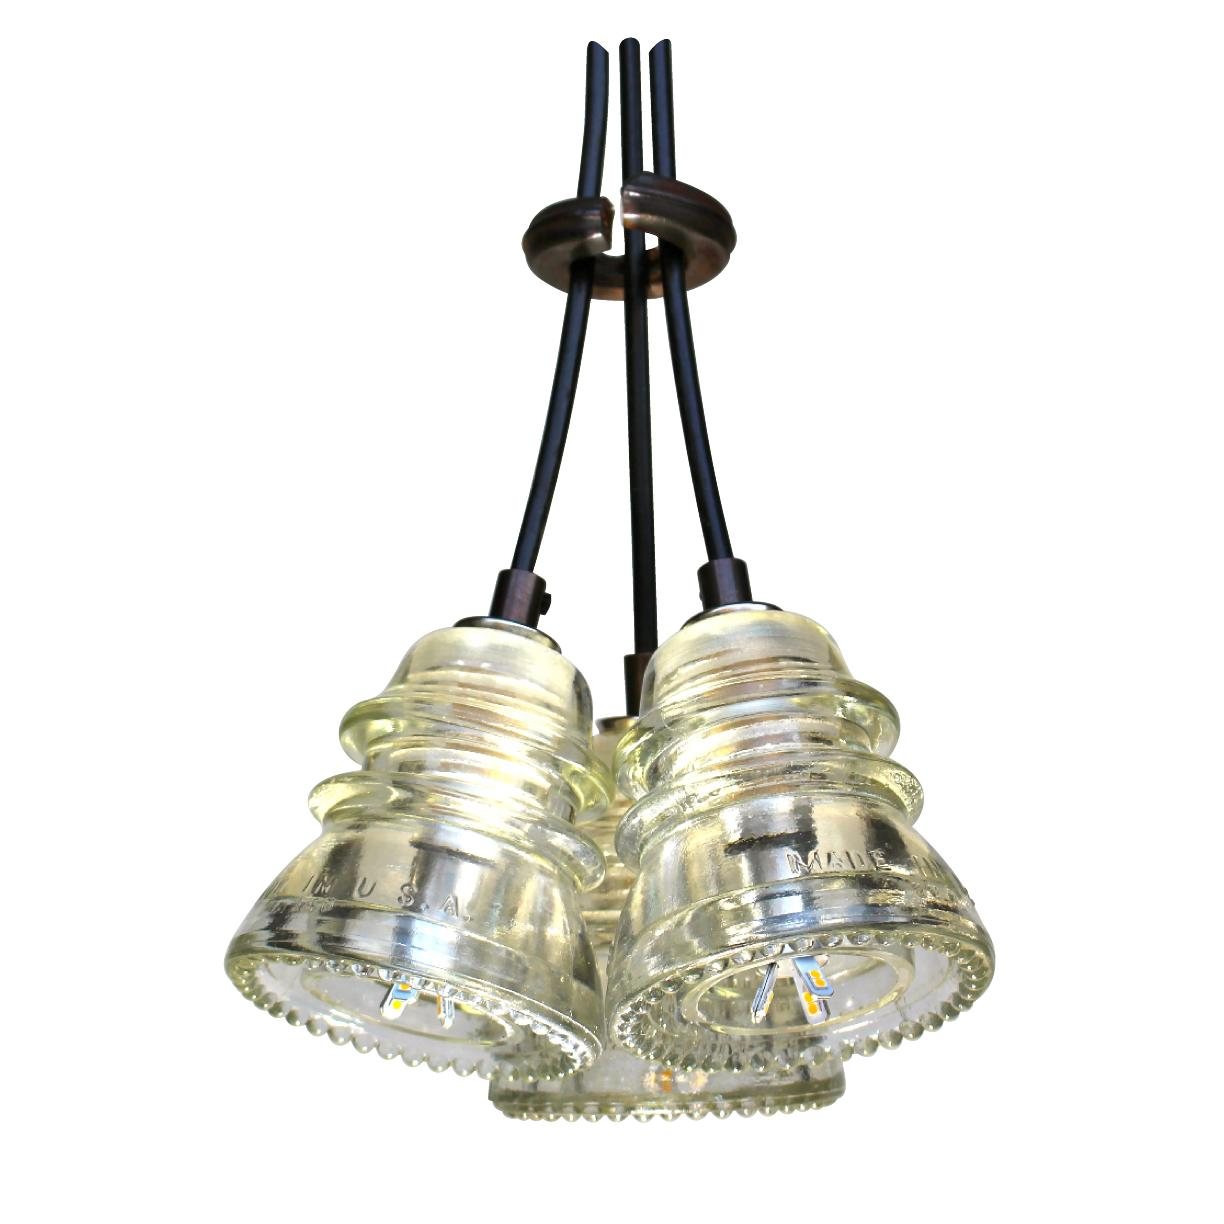 Insulator light pendant led cluster 120v 6w 500 lumens for Insulator pendant light